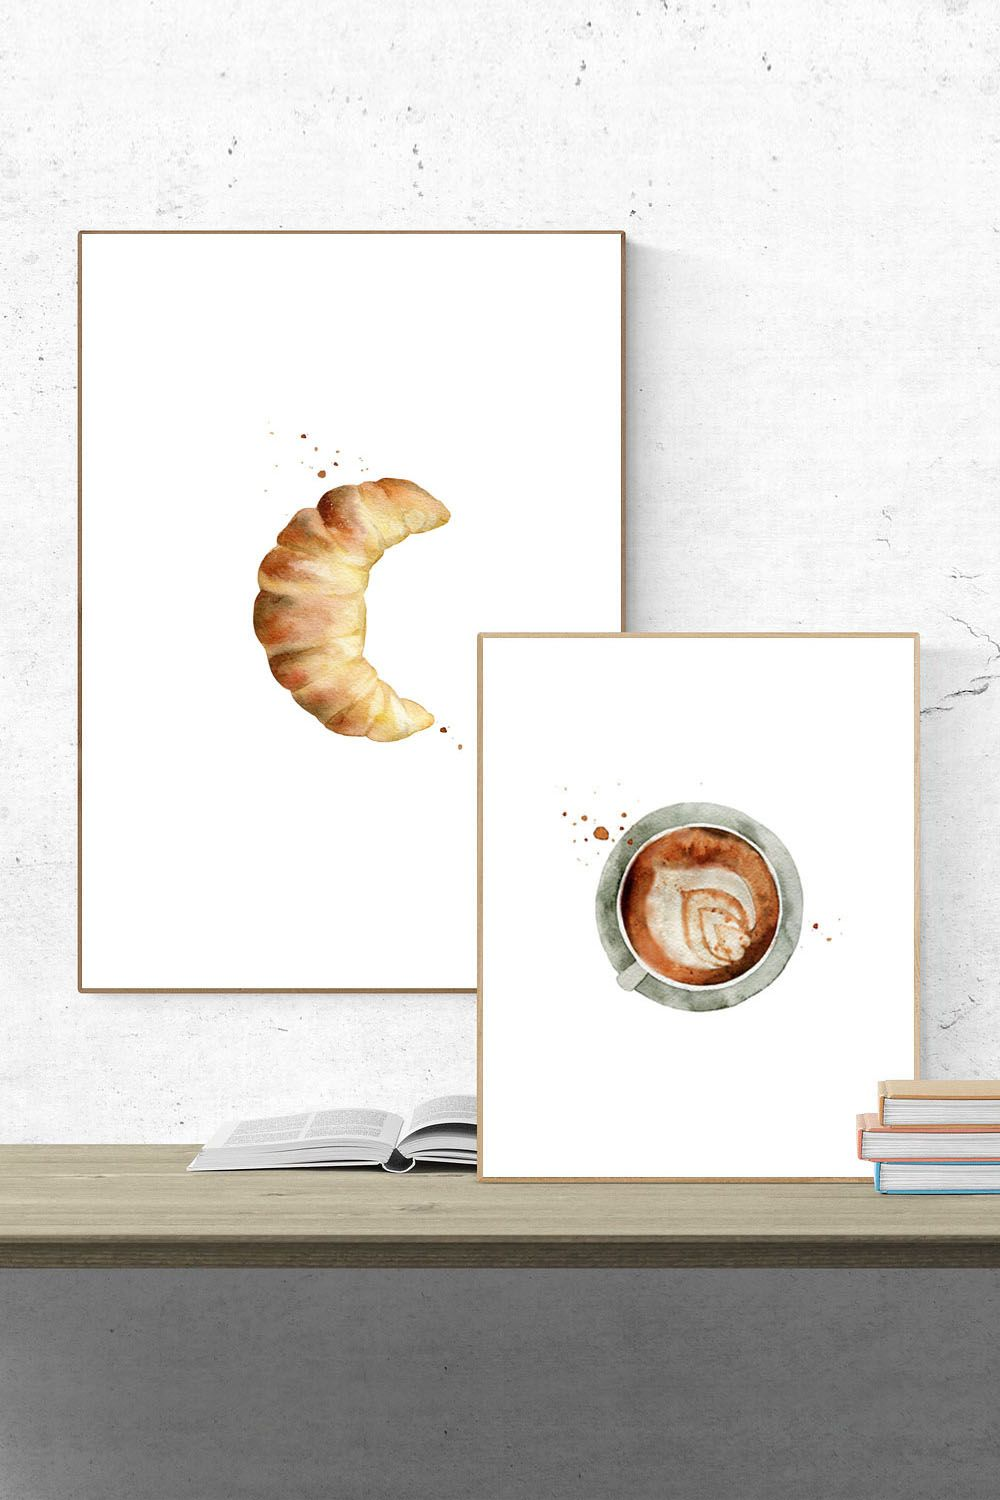 kitchen collection coupons printable kitchen art collection coffee croissant food print set coffee drink print dining wall poster 5495